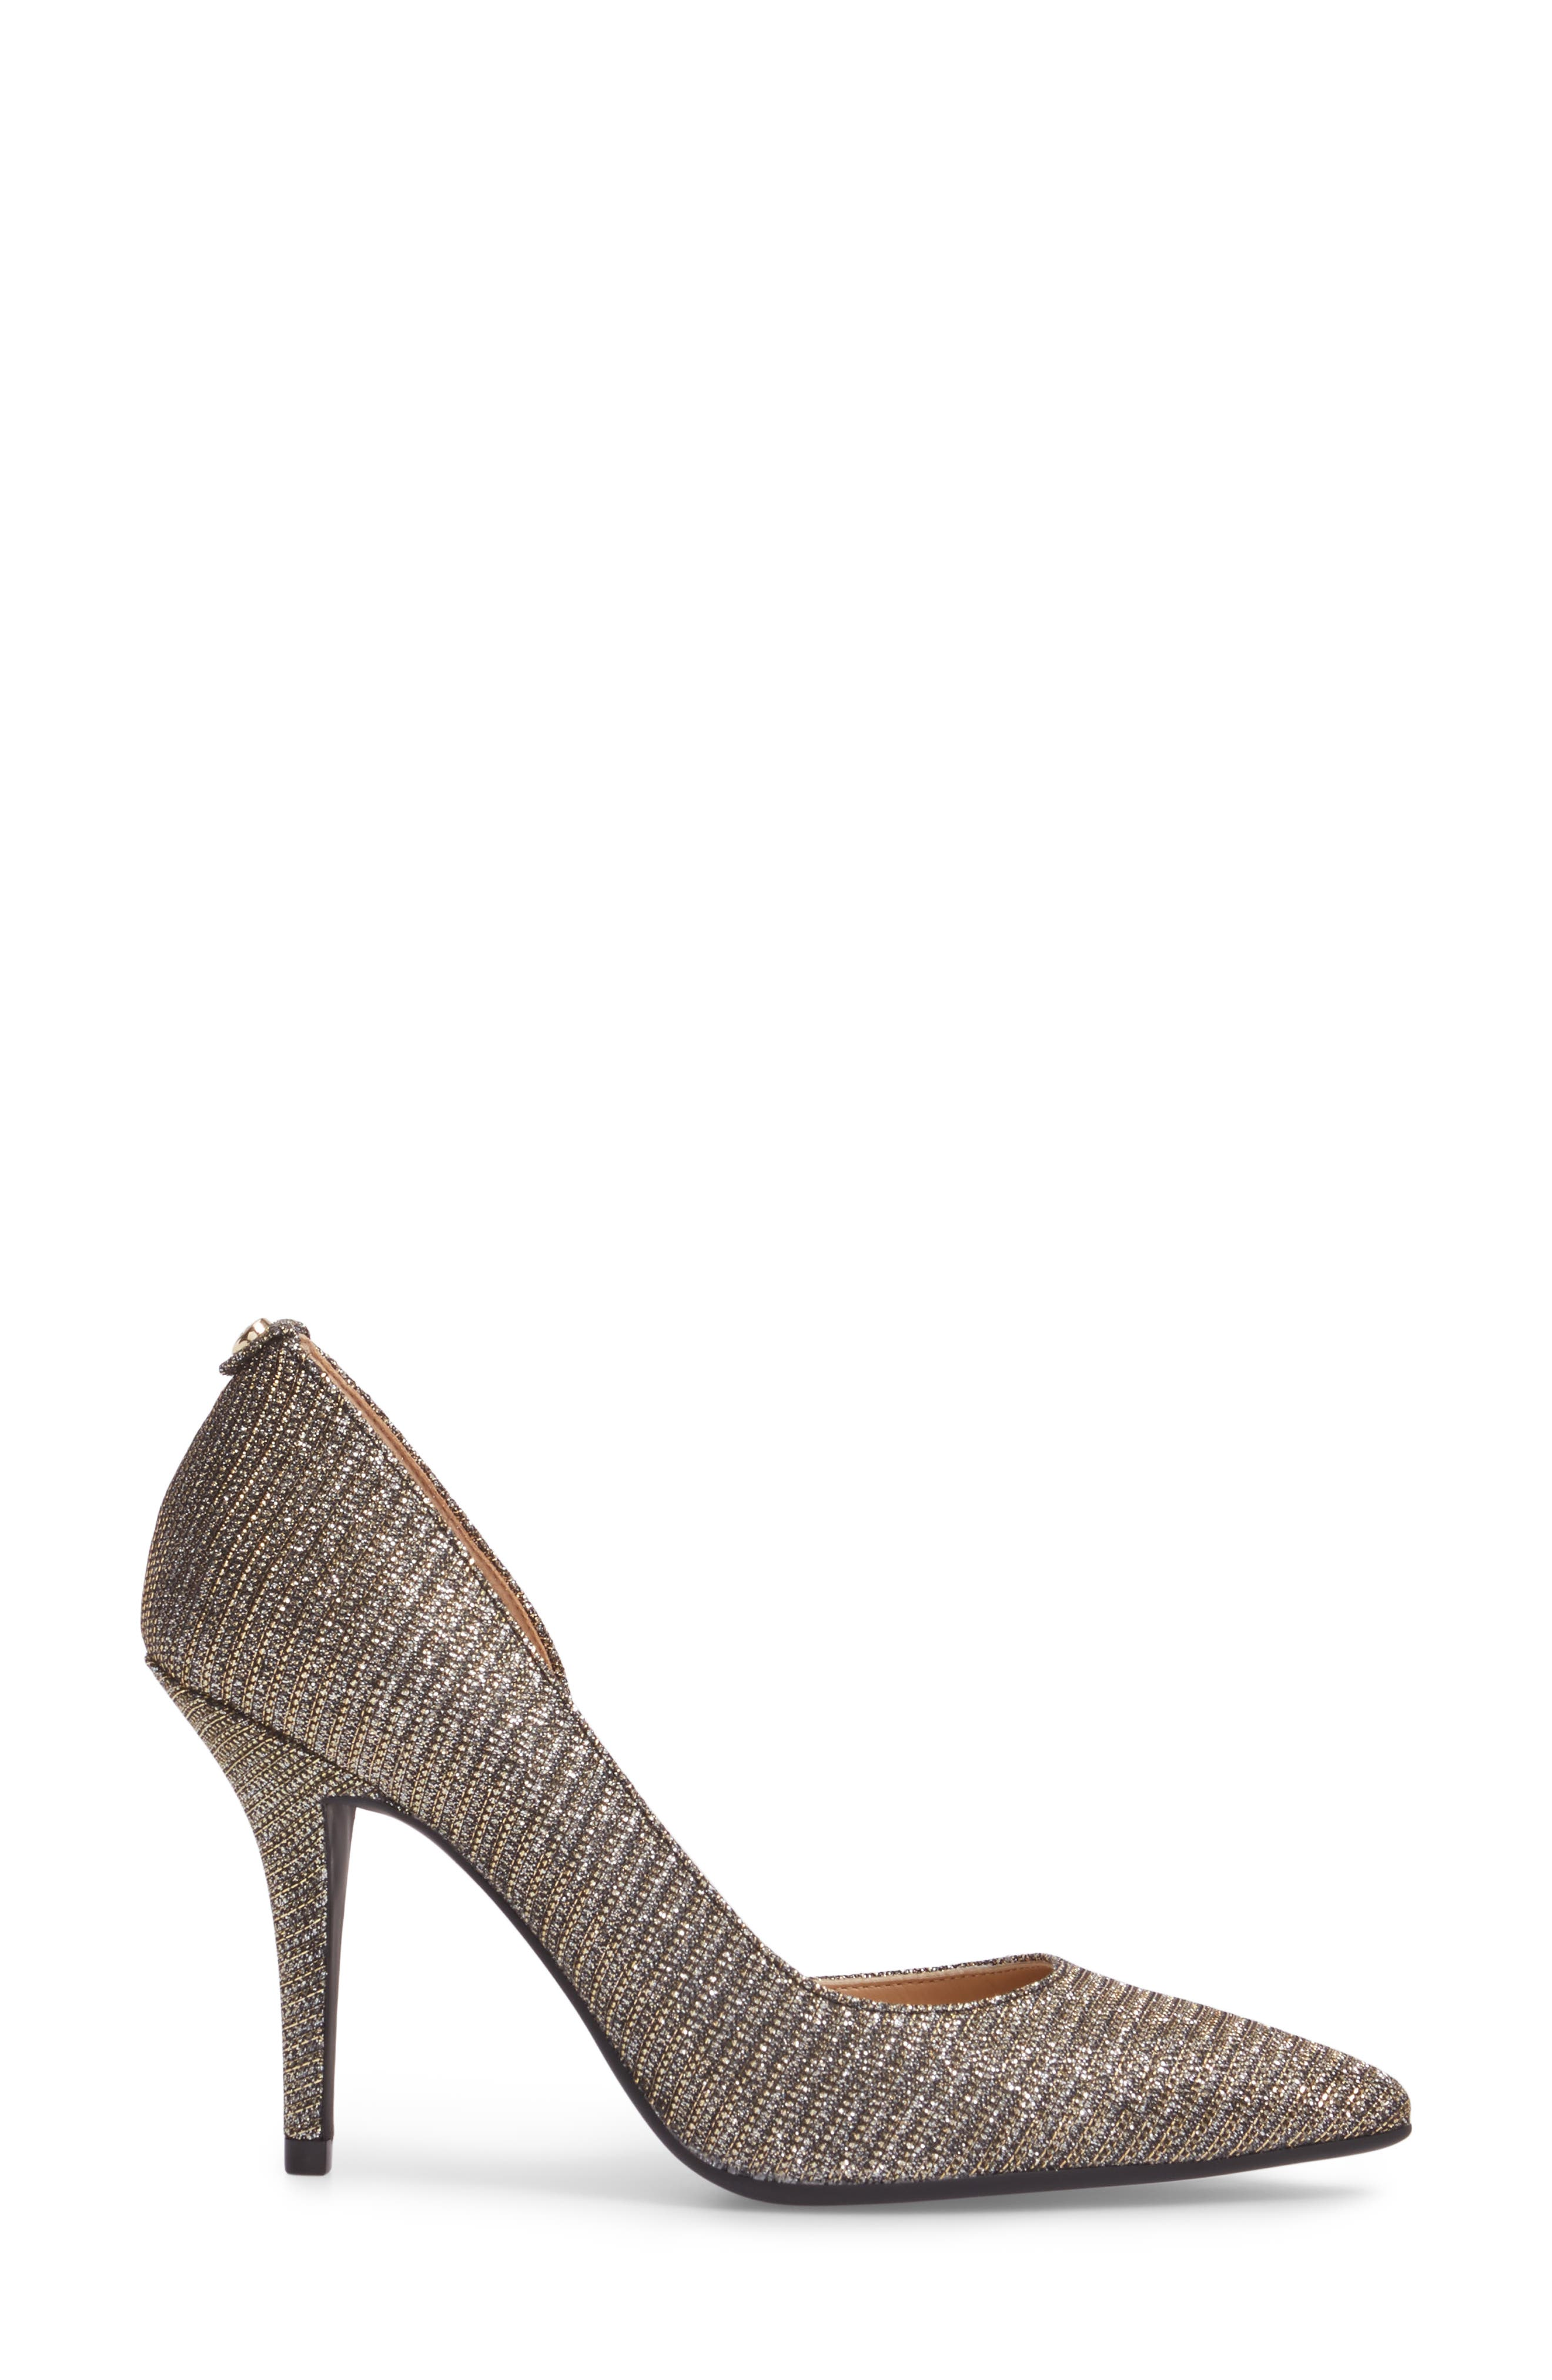 Nathalie Demi d'Orsay Pointy Toe Pump,                             Alternate thumbnail 3, color,                             004